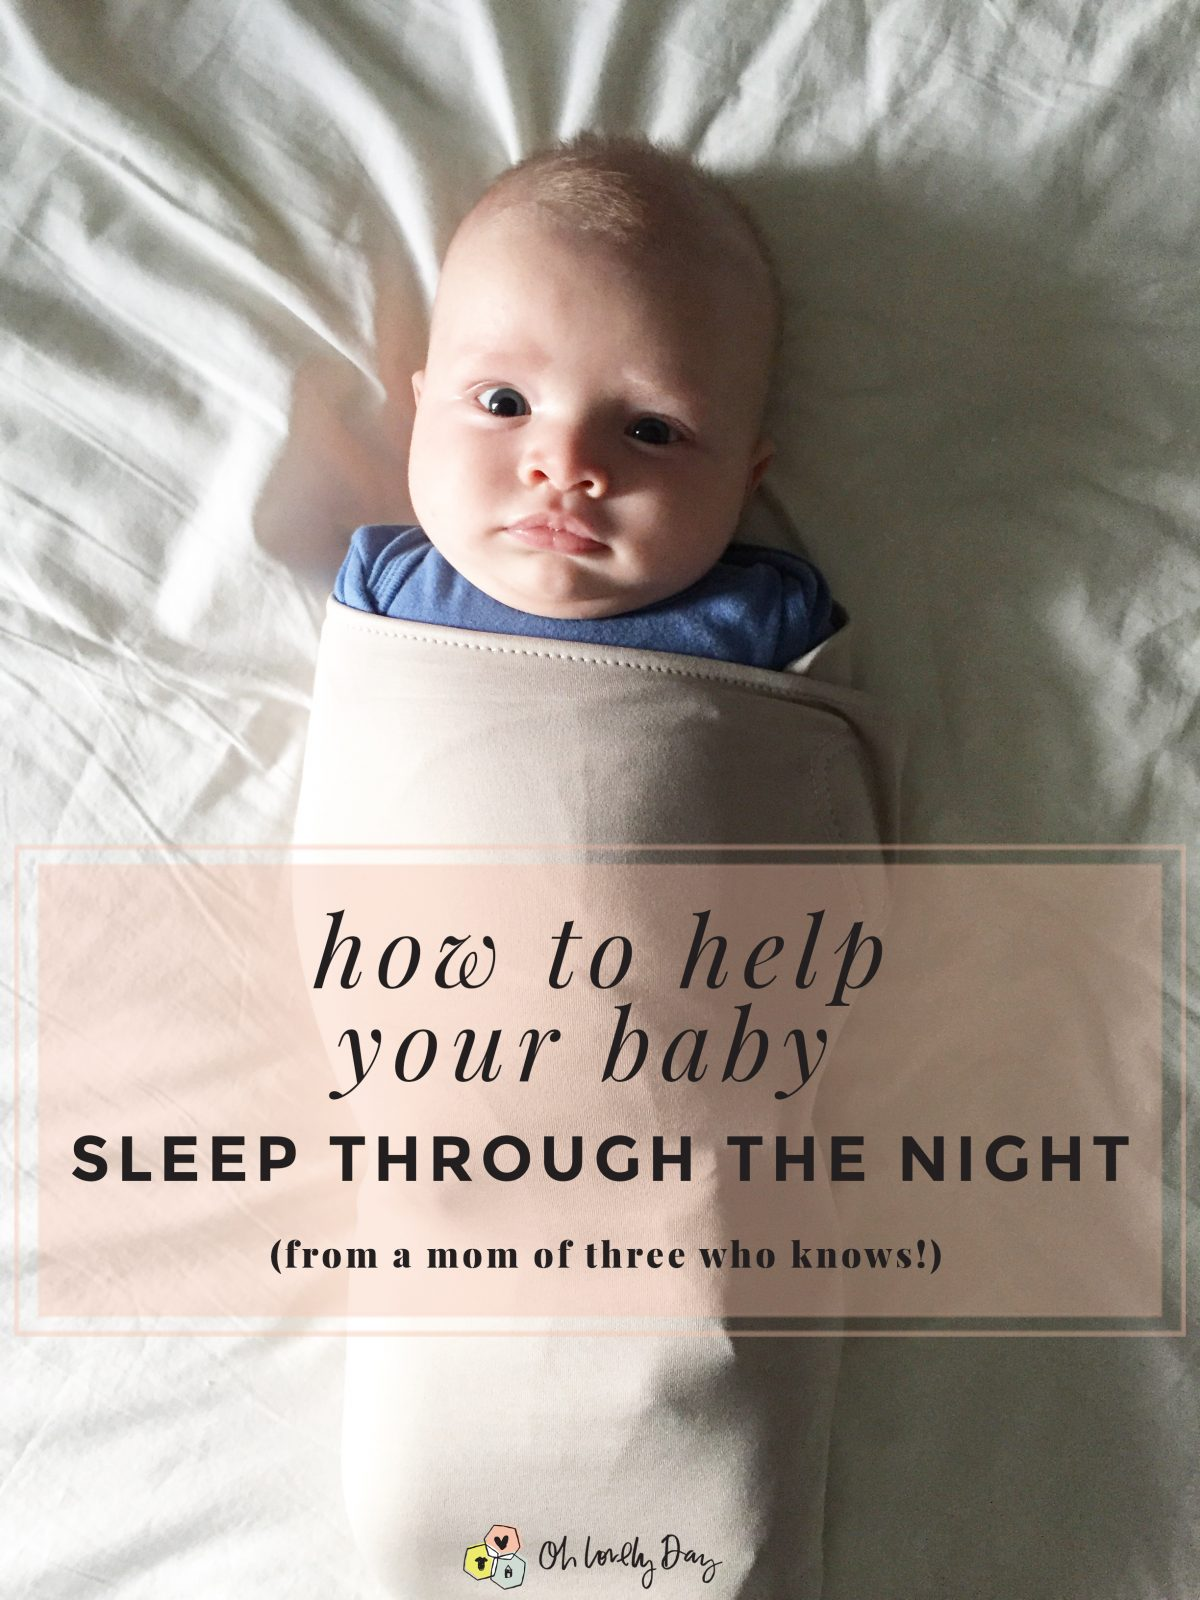 The Ultimate Guide To Help Your Baby Sleep Through The Night With Sample Routine, Schedule, and Strategy from a Mom of 3